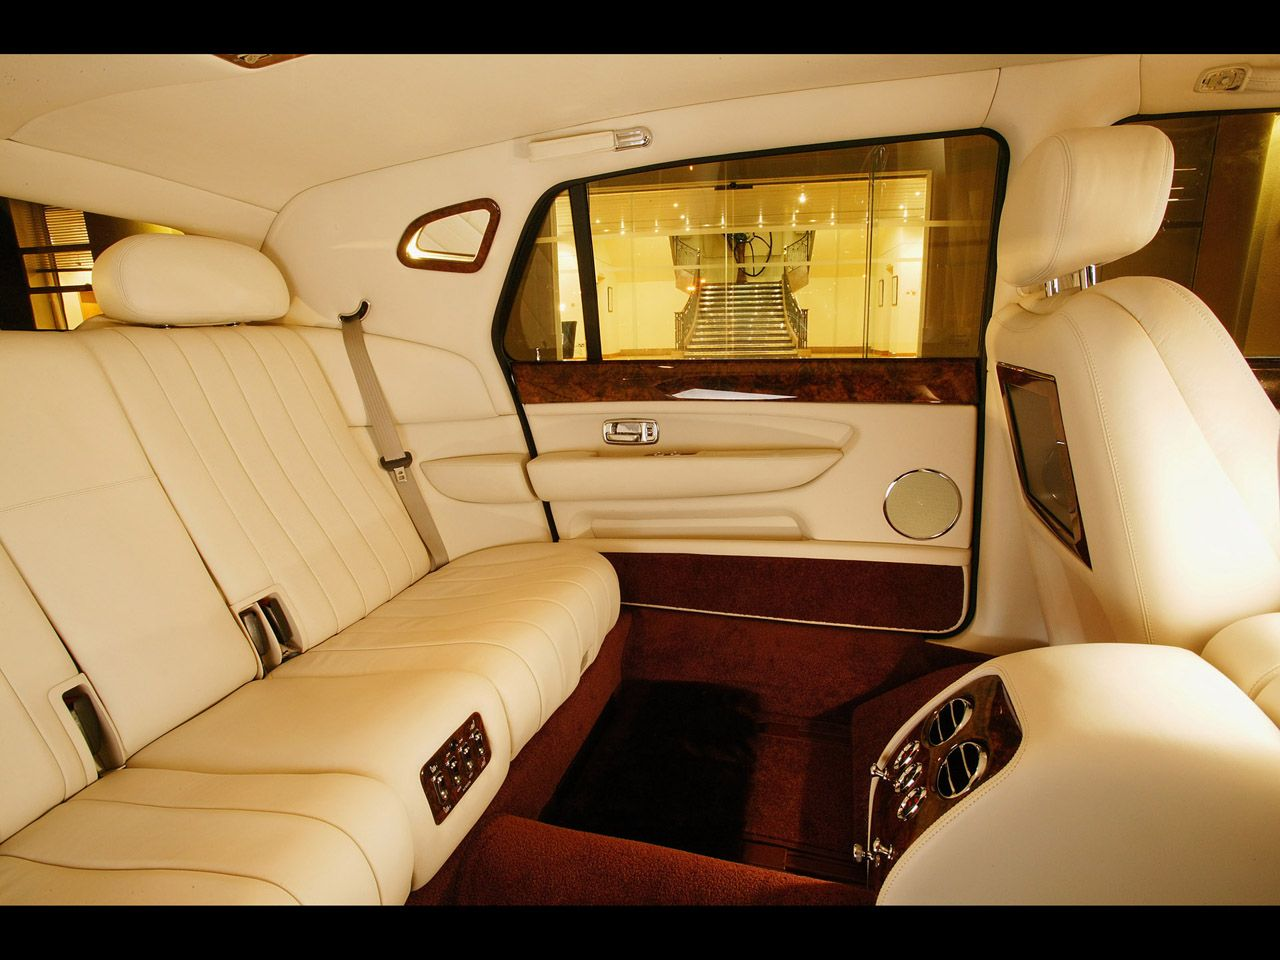 chauffeur silo a royce our rental rolls at pillow photo lowest the front vintage of white in price limo bentley